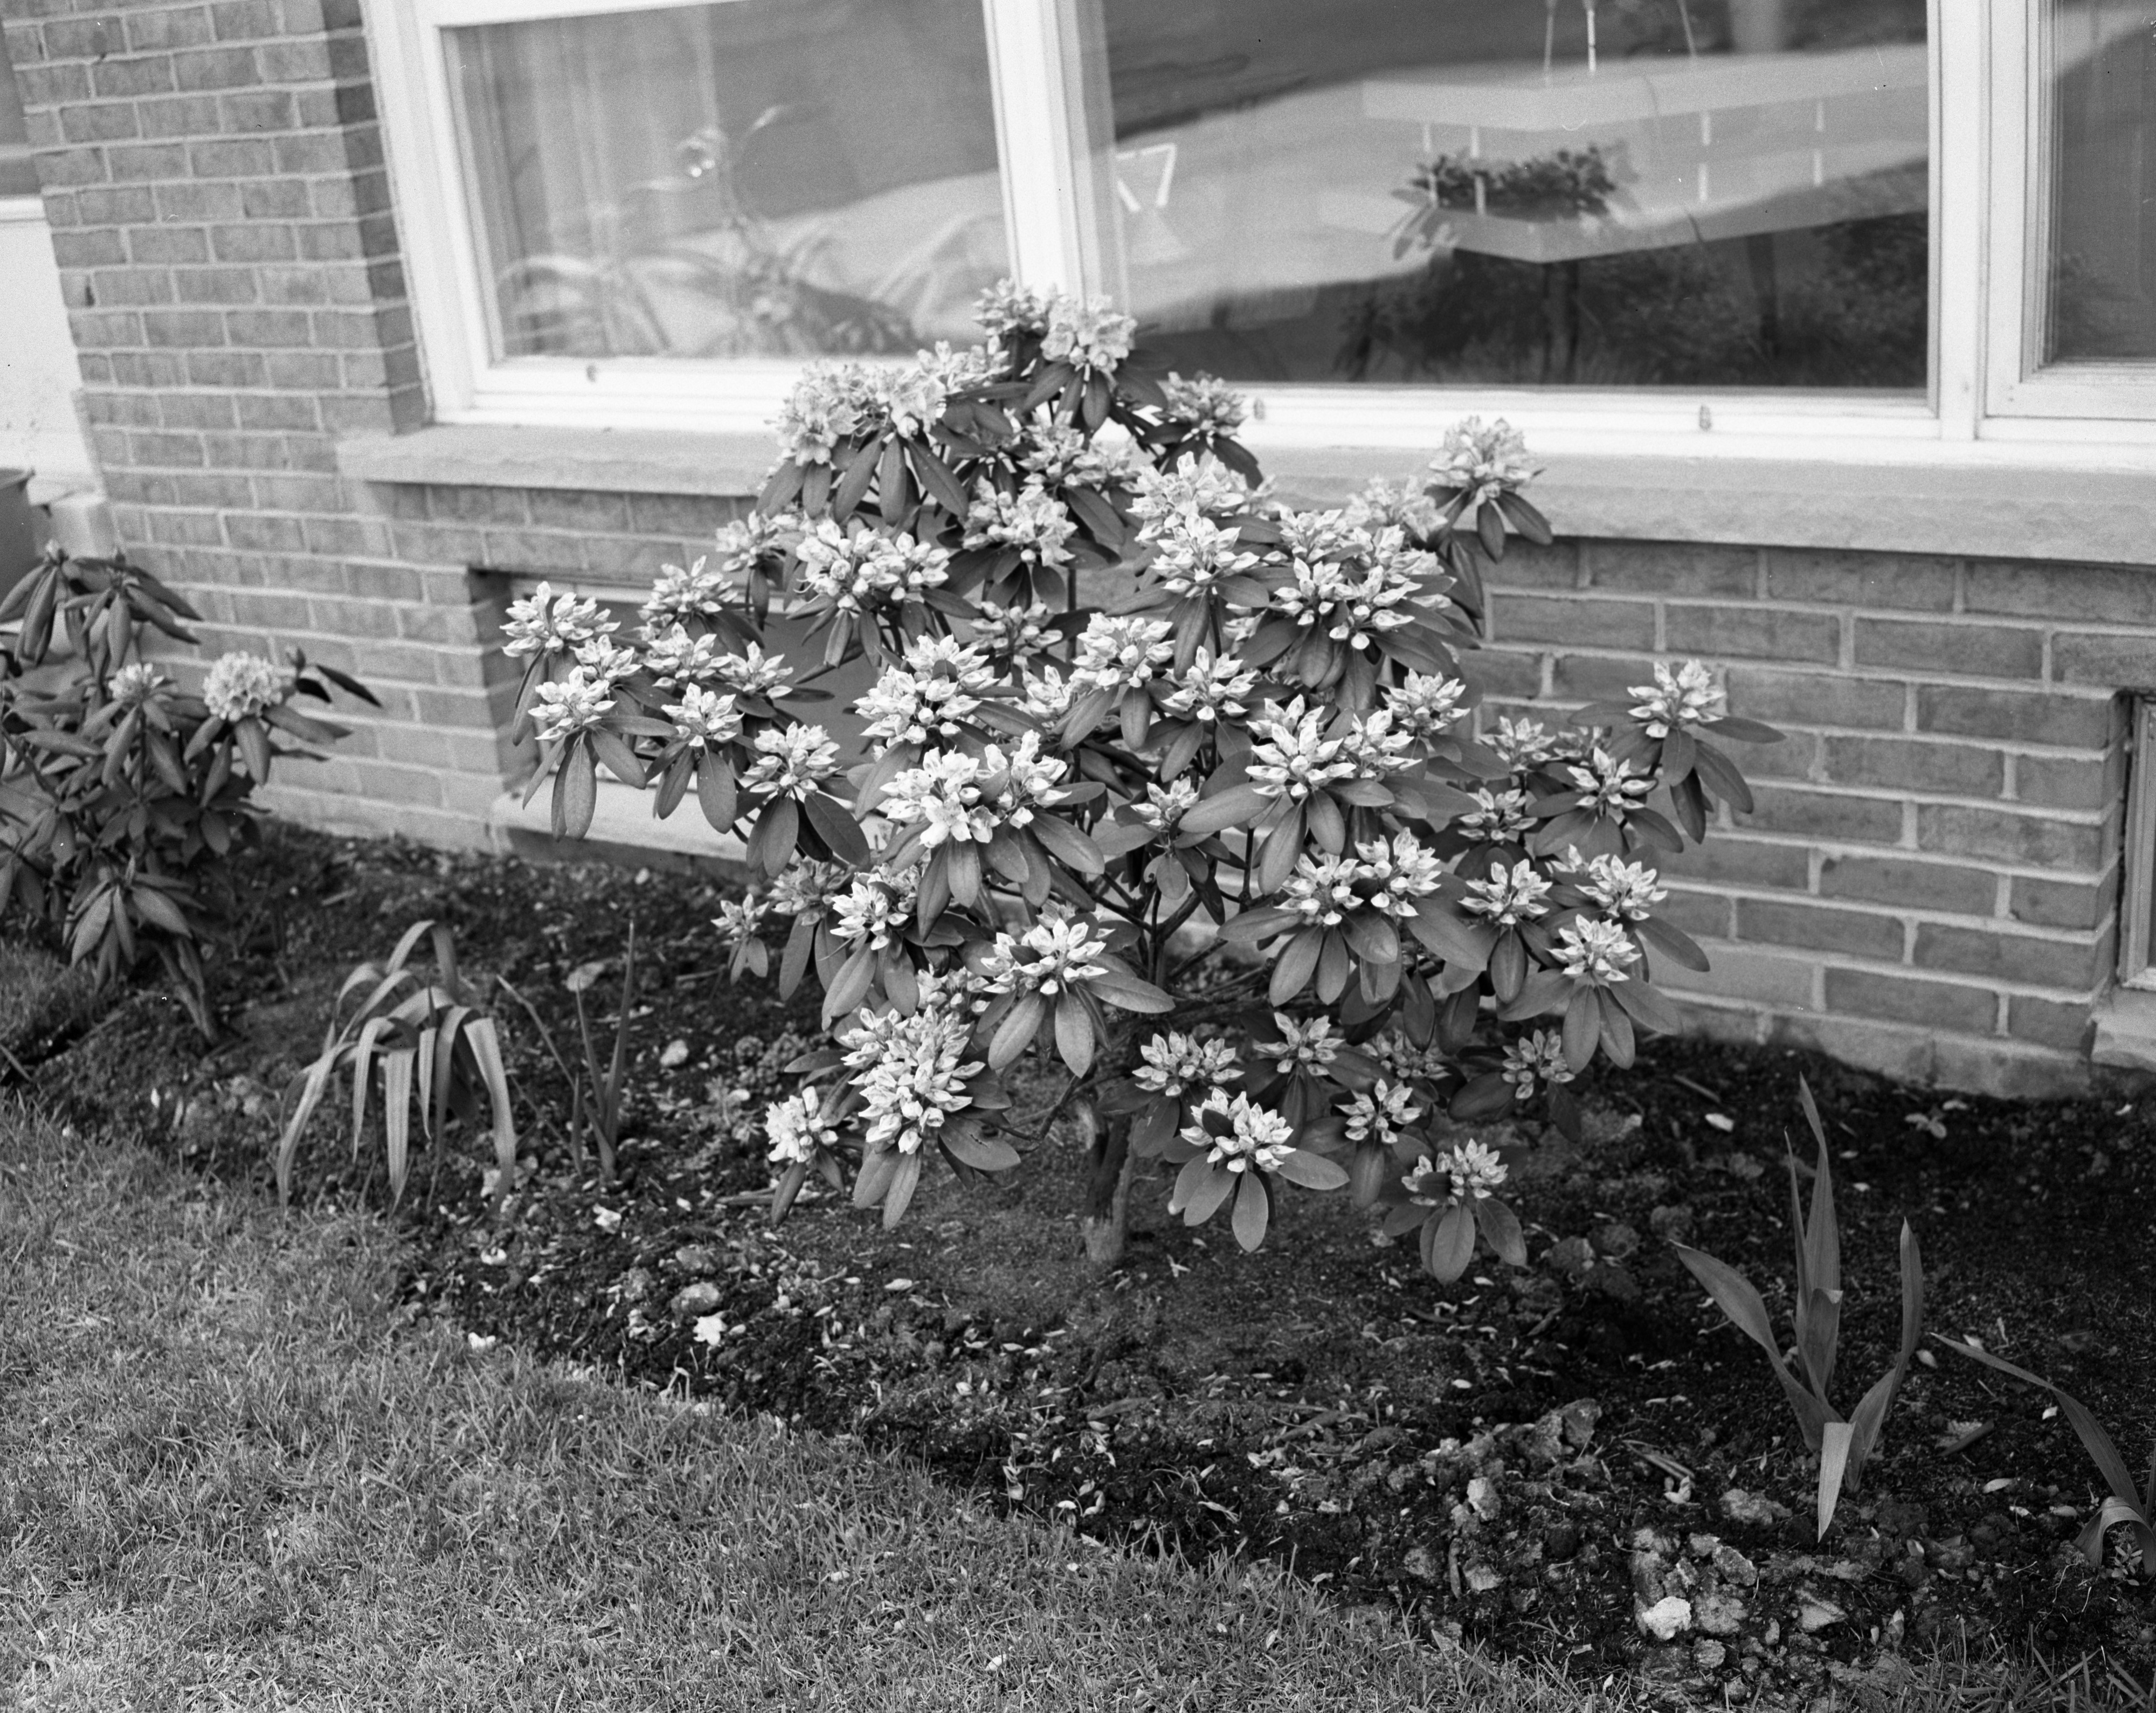 Rhododendron with 112 Blossoms, June 1960 image